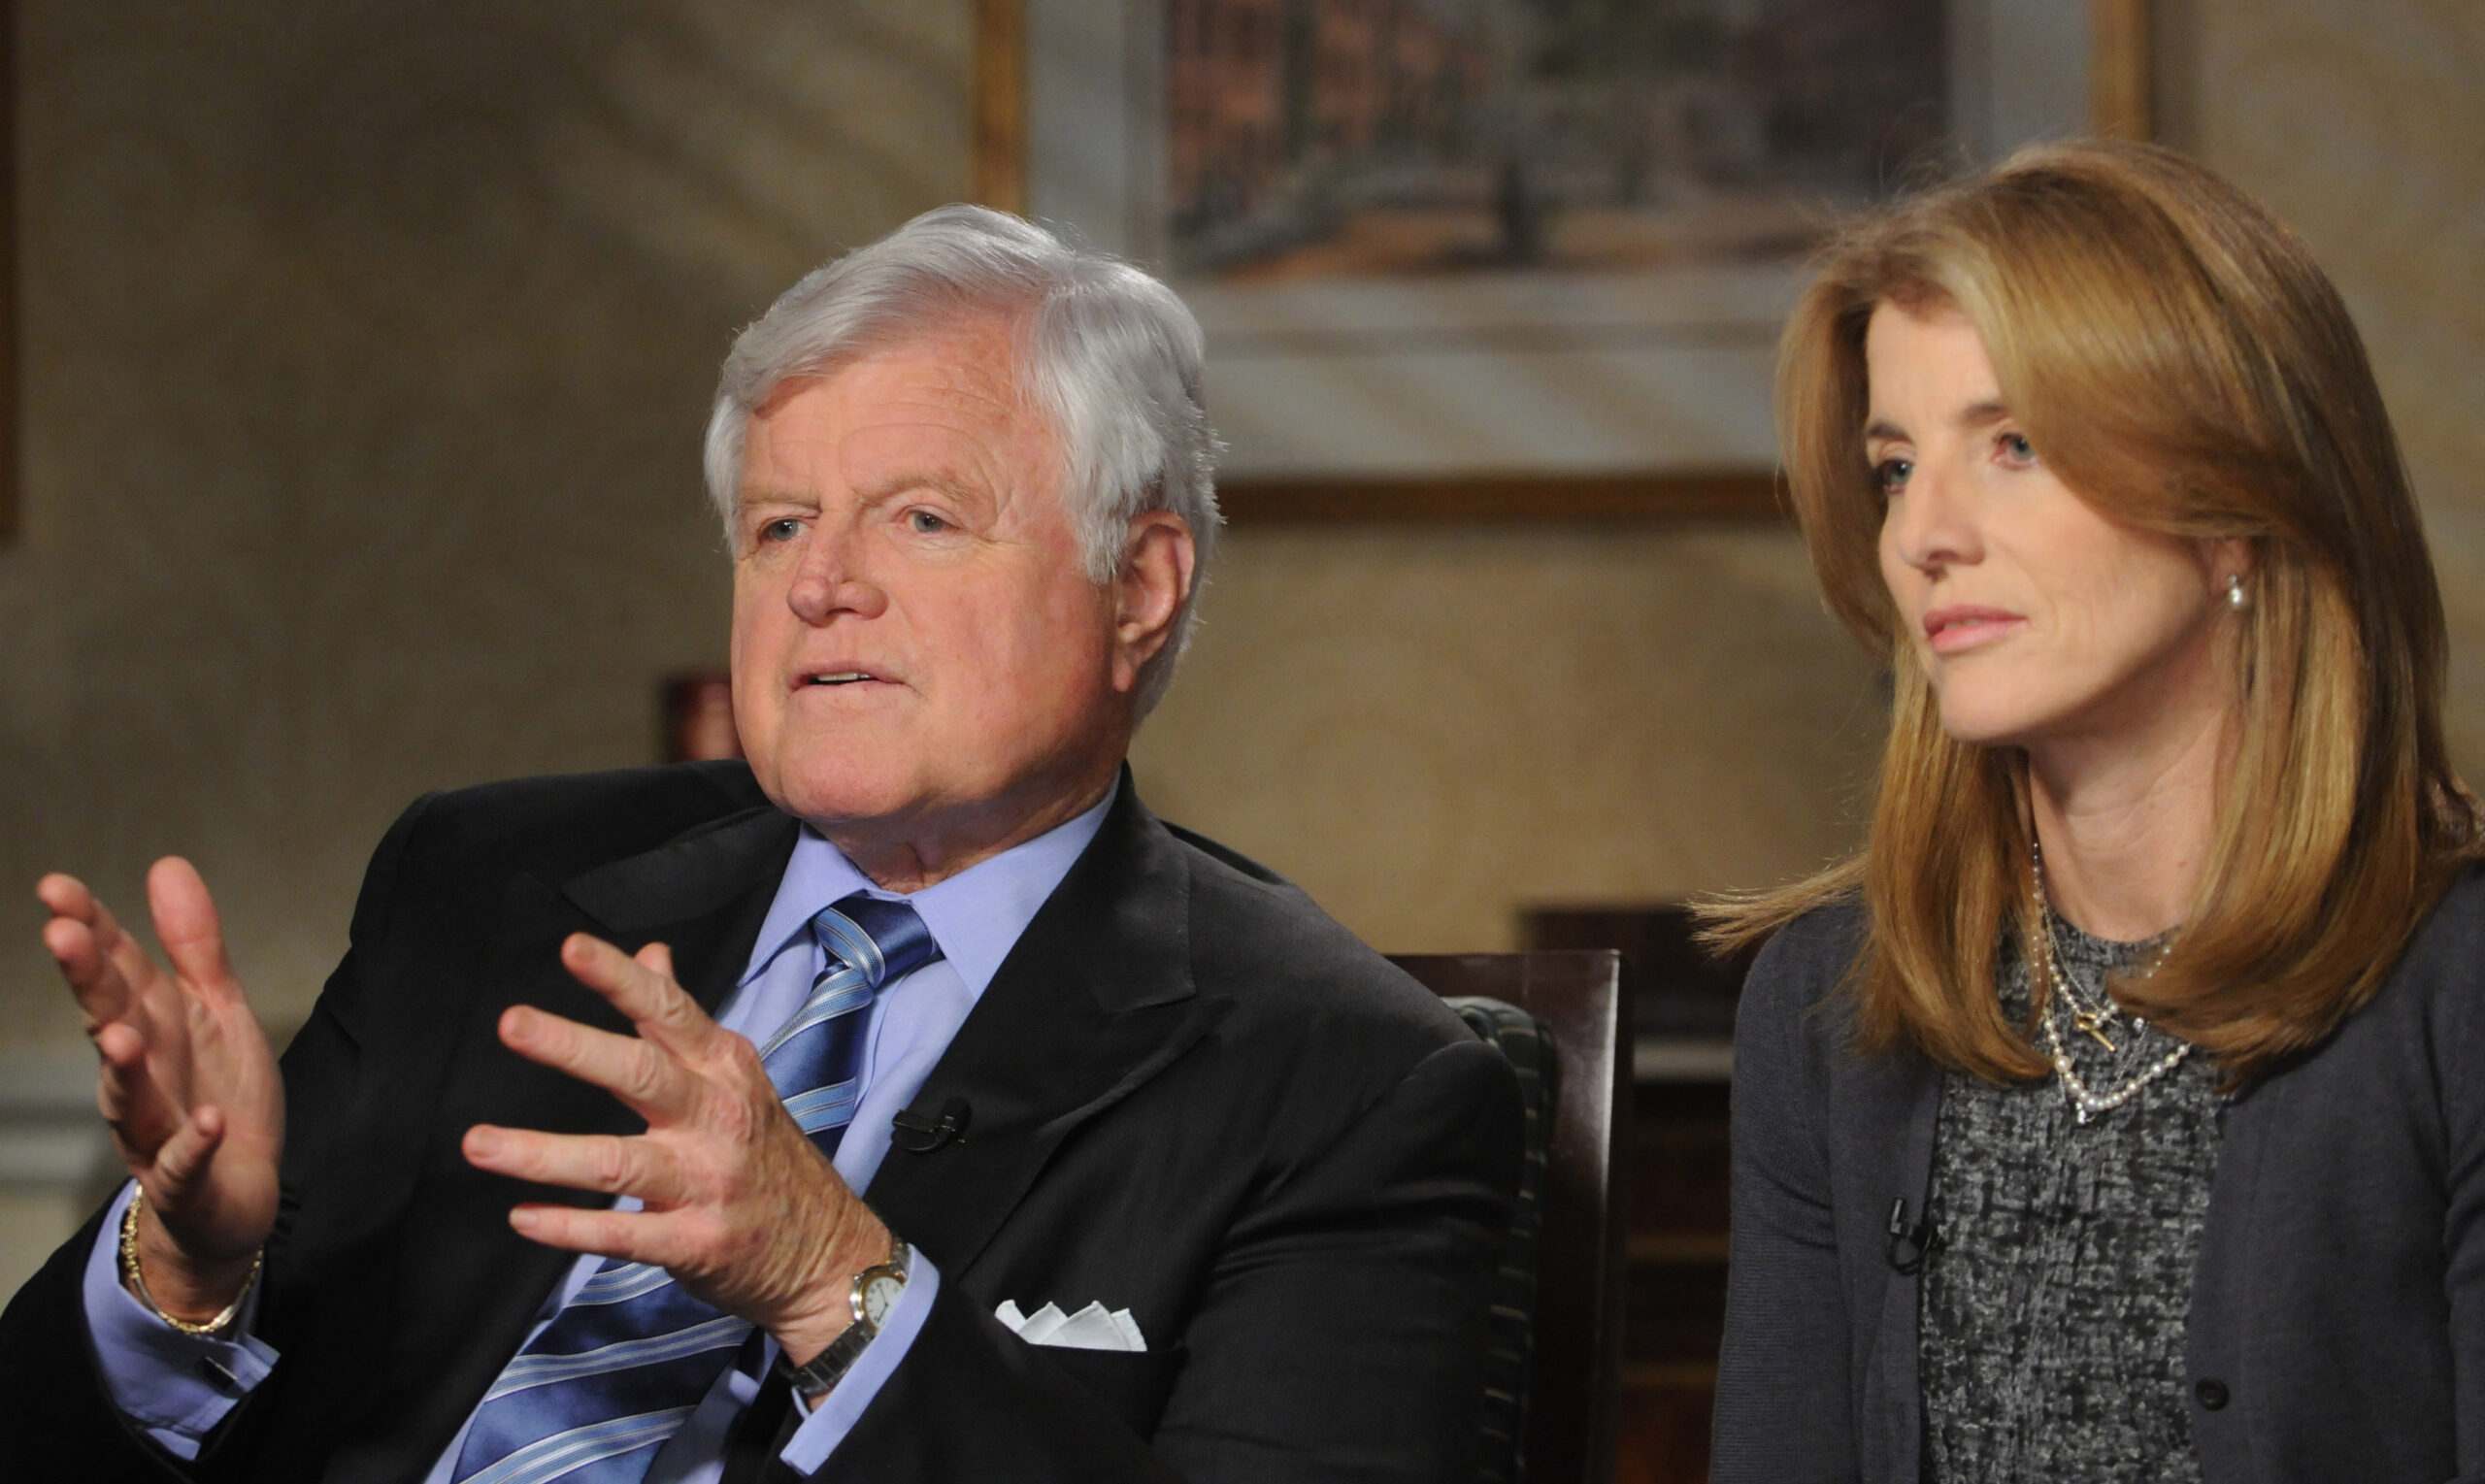 ABC World News with Charles Gibson Caroline Kennedy and Sen.Ted Kennedyi